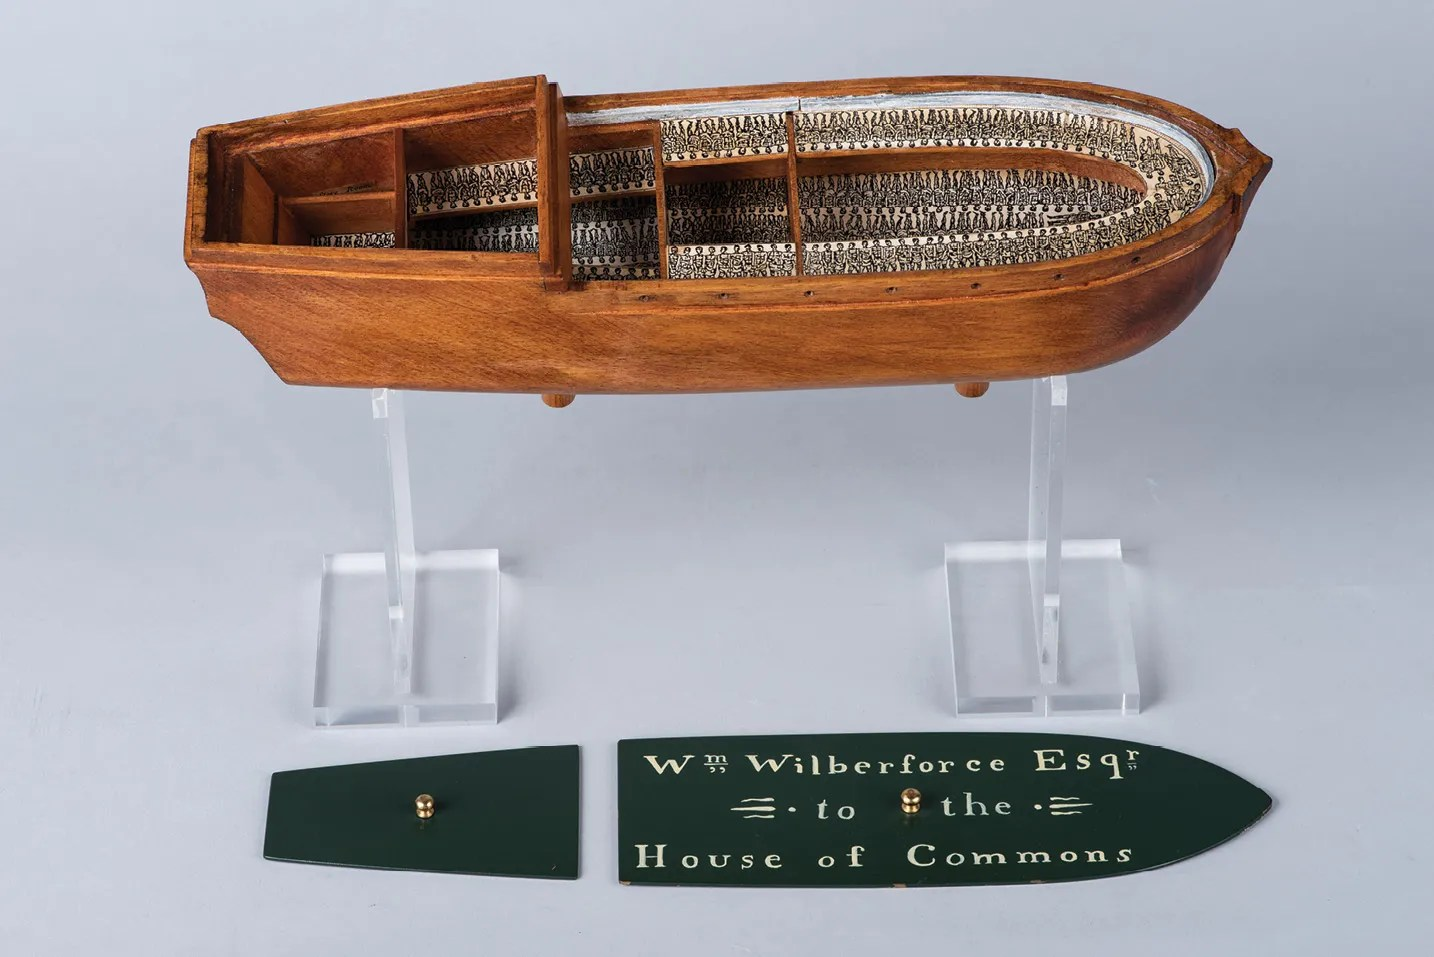 RIGHT A reproduction of the Brookes, a slave ship that became infamous when the prints of her layout were published in 1788, highlighting the horrendous conditions slaves suffered on board. Two models of the ship were commissioned by the famous abolitionist Thomas Clarkson: one was given to Comte de Mirabeau, a French statesman, and the other to William Wilberforce MP, who used the model during his anti-slavery speeches in Parliament.